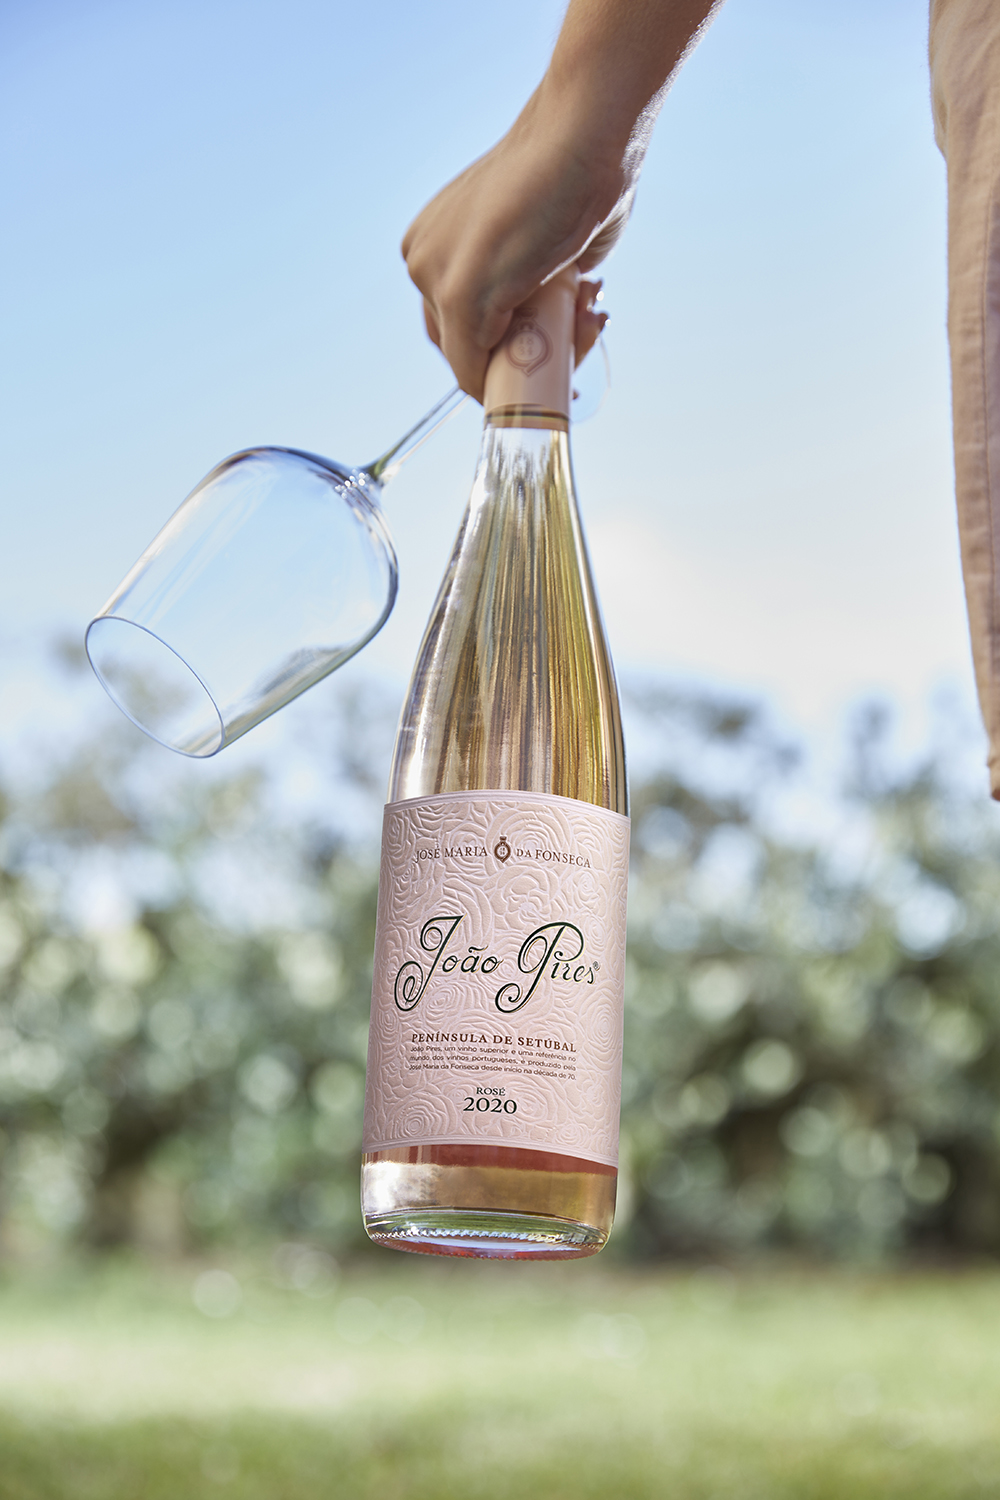 João Pires Rosé Blooms by the Hands of Omdesign